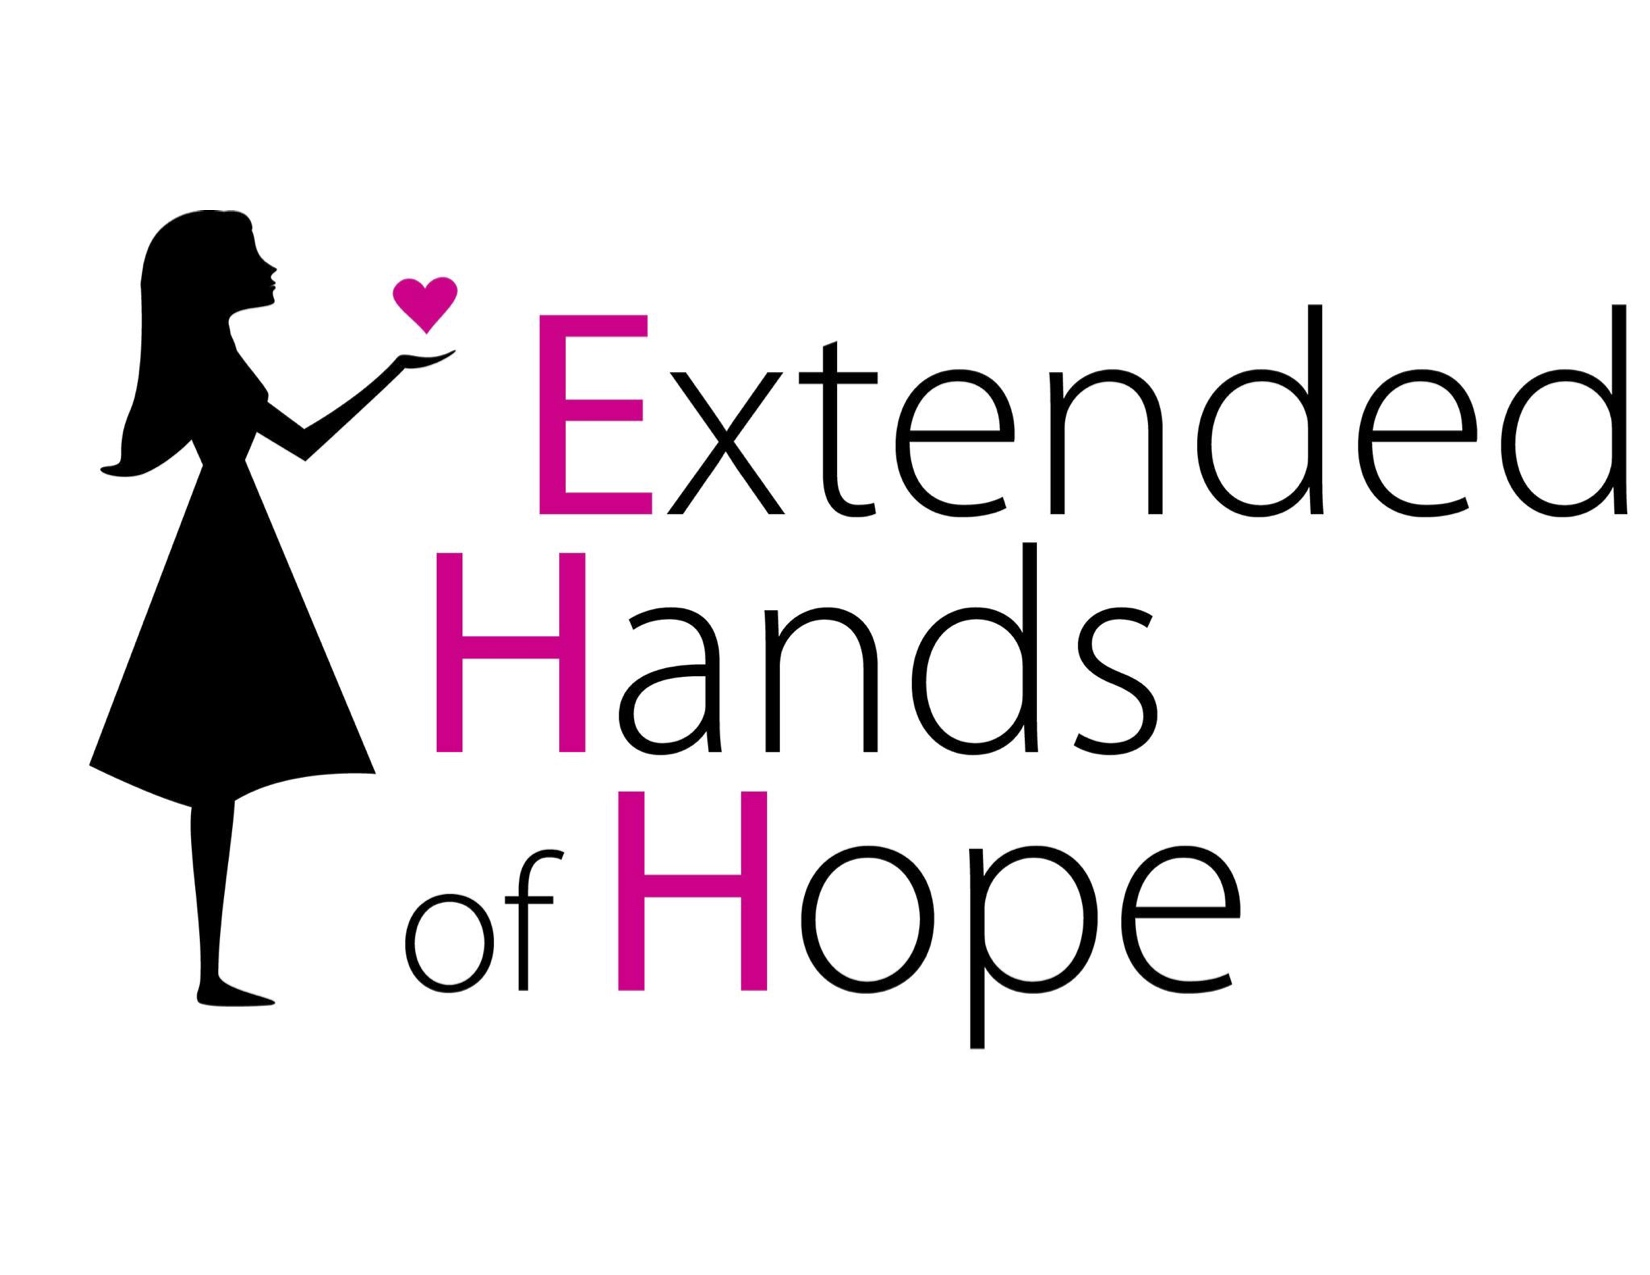 Extended Hands of Hope